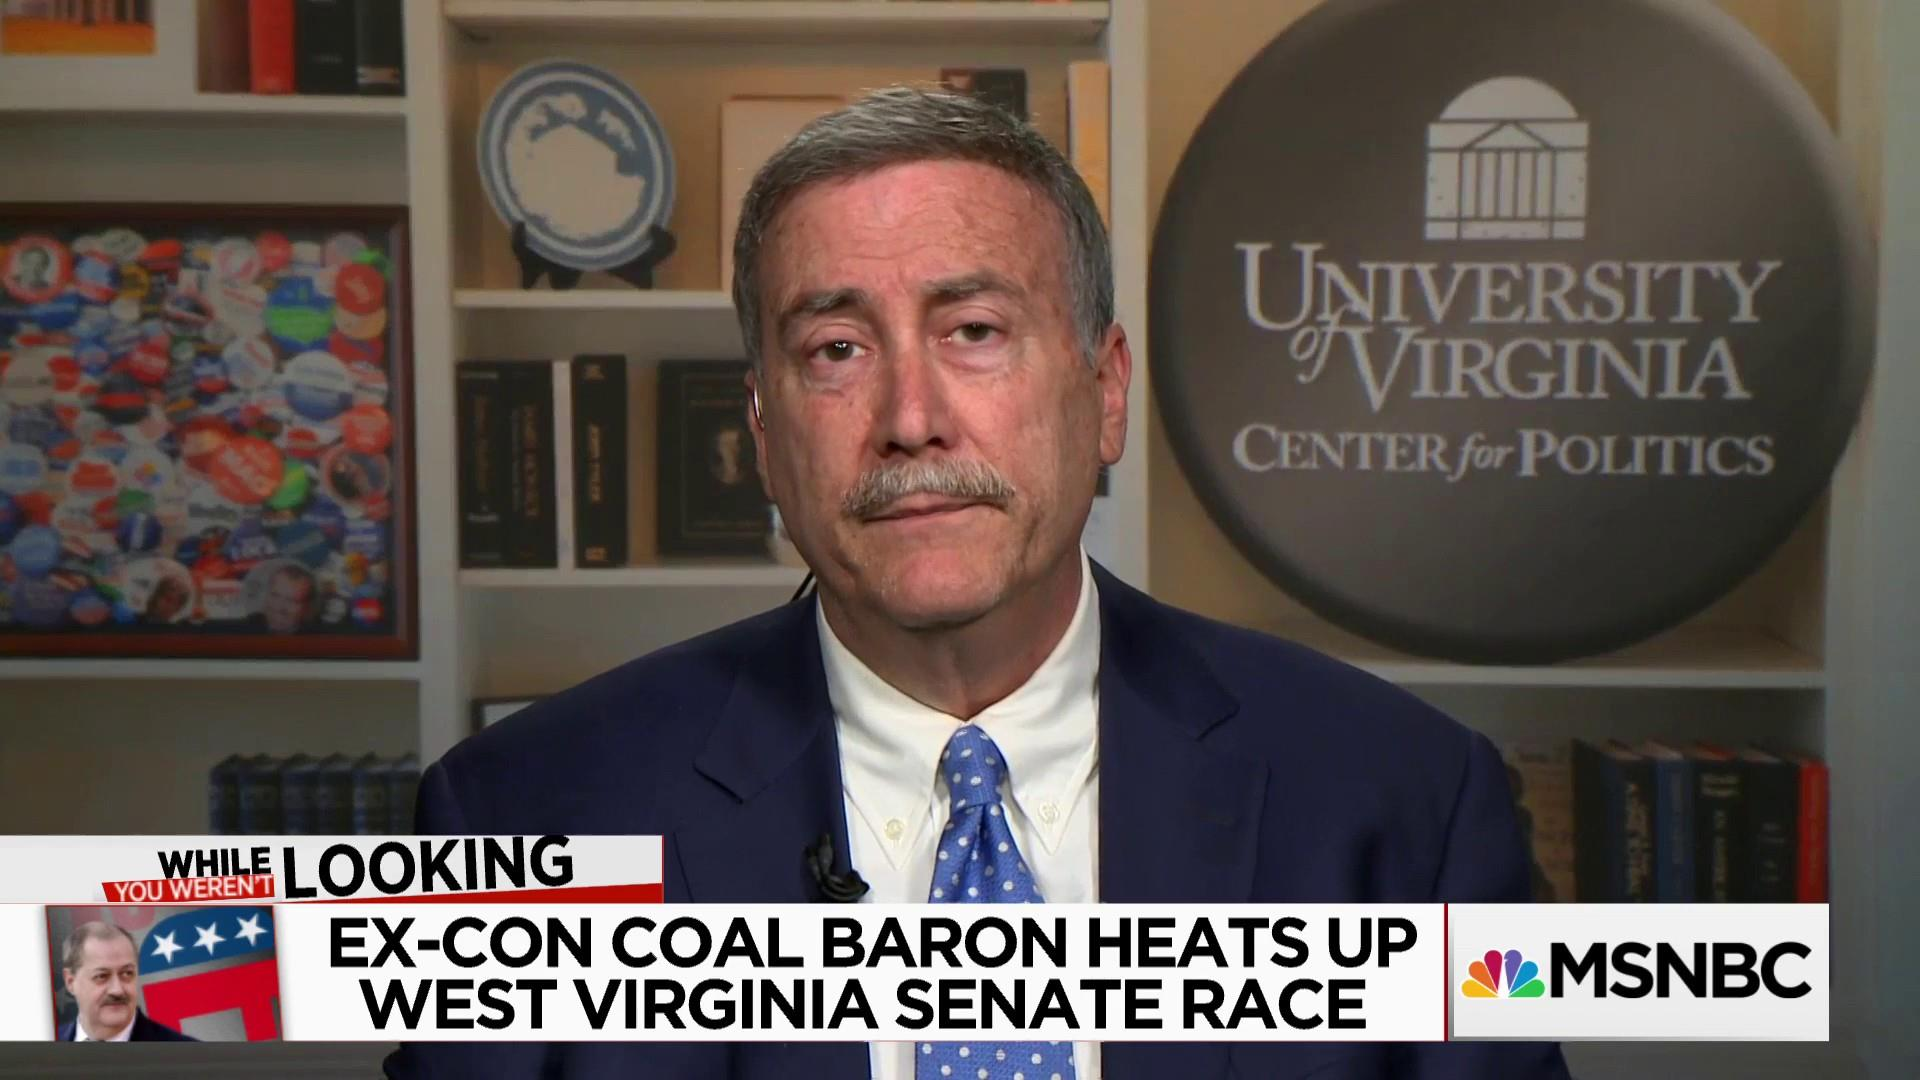 Could an ex-con coal baron win WV Senate Seat?